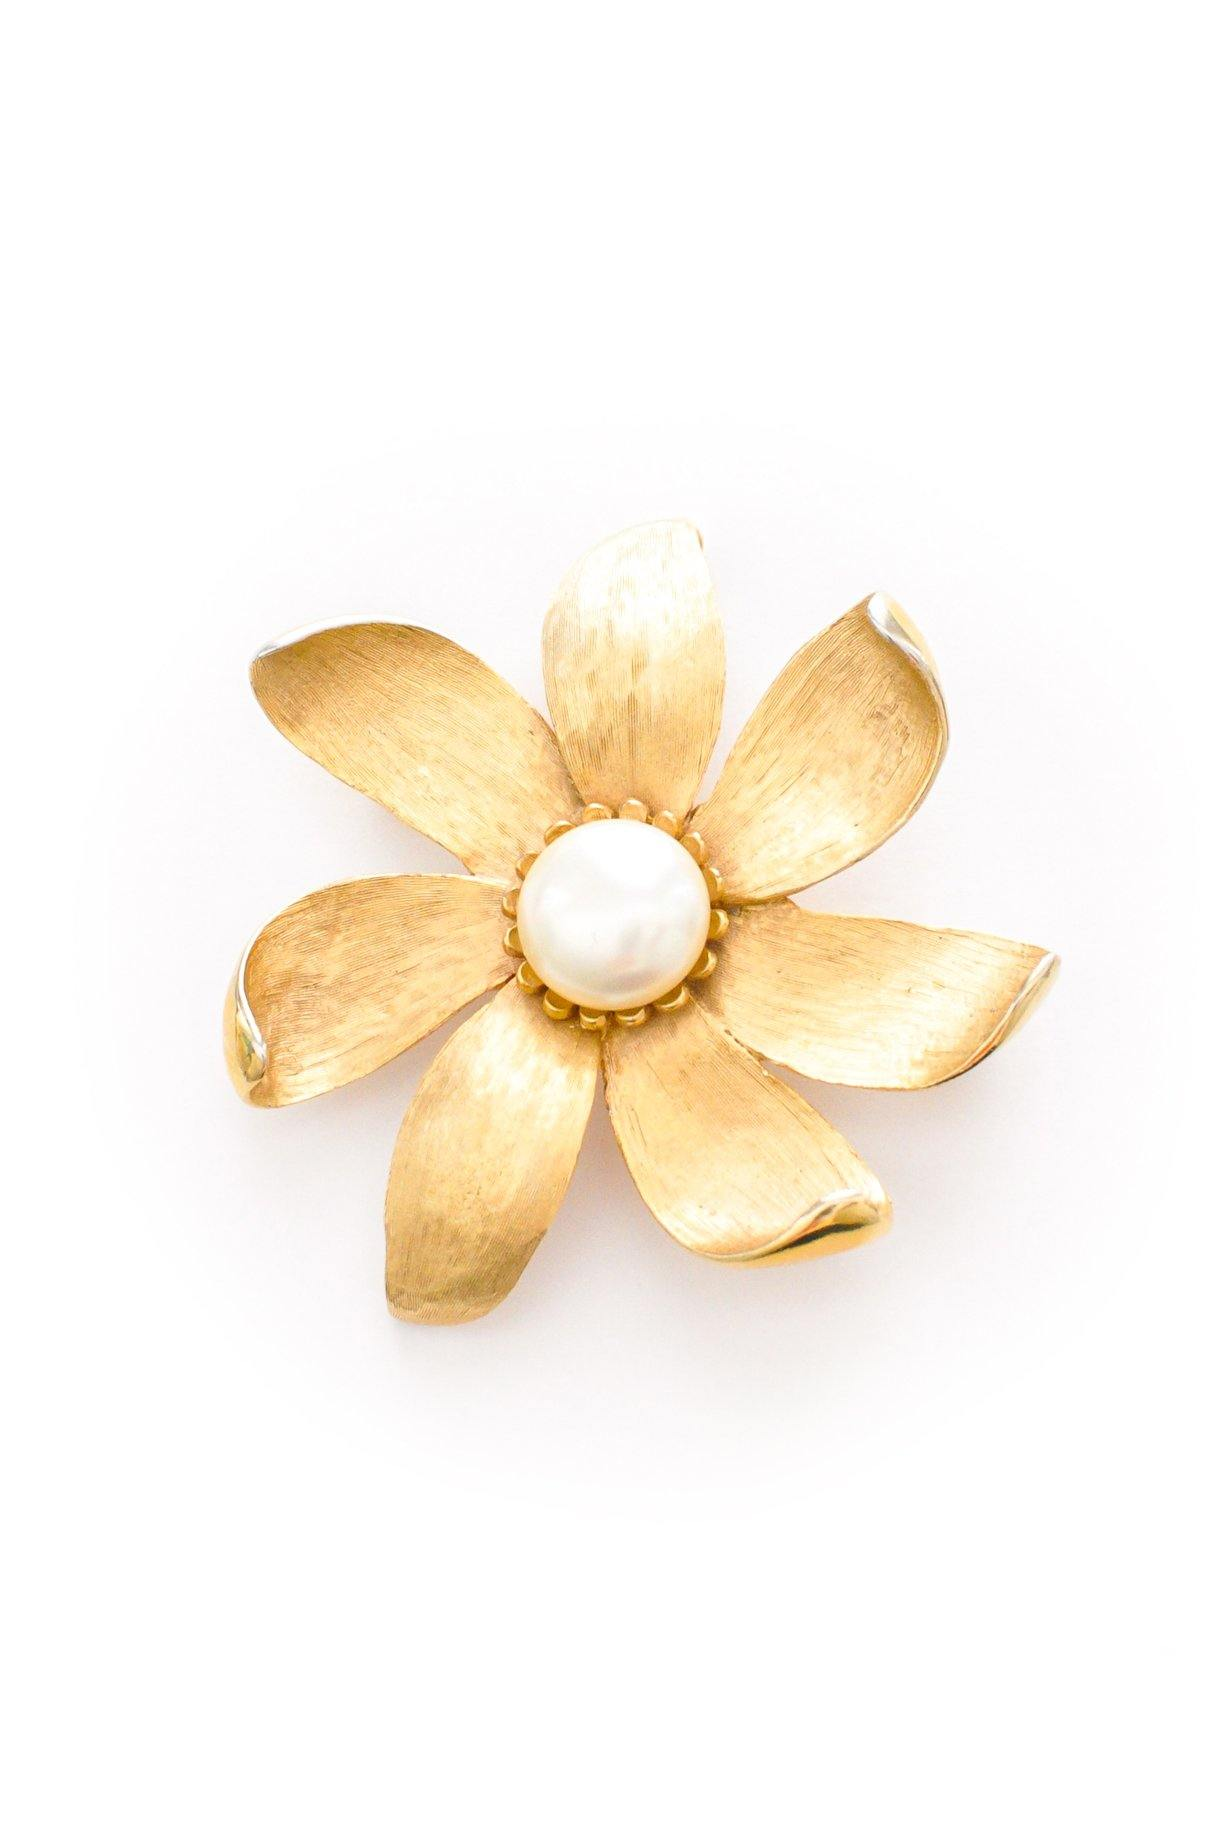 Pearl Floral Brooch from Sweet & Spark.